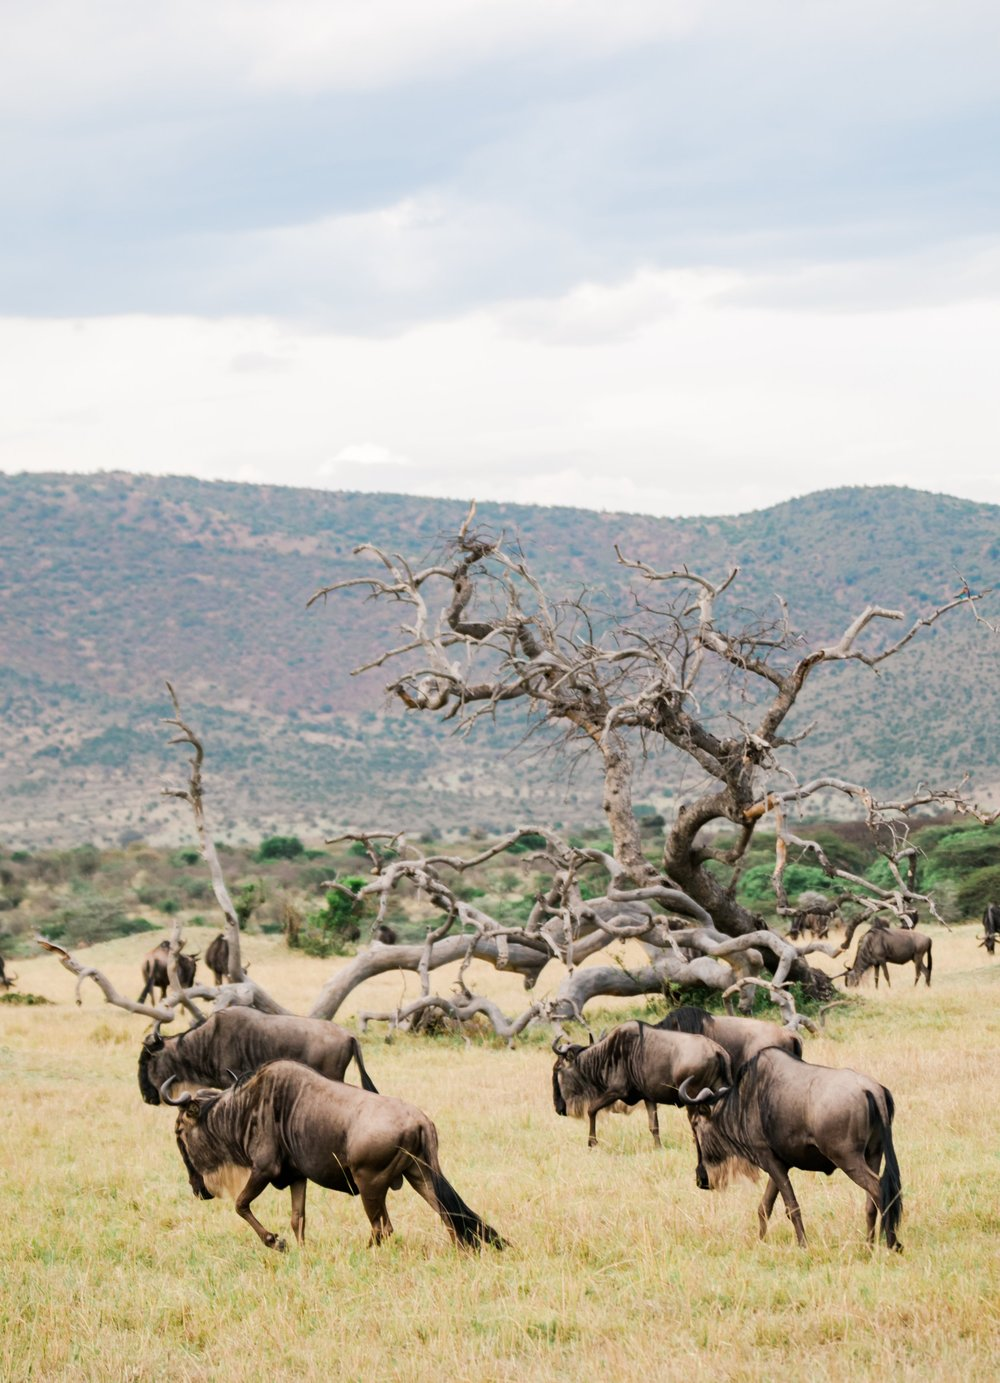 Wildebeest in Massai Mara - great migration Ph. Valorie Darling